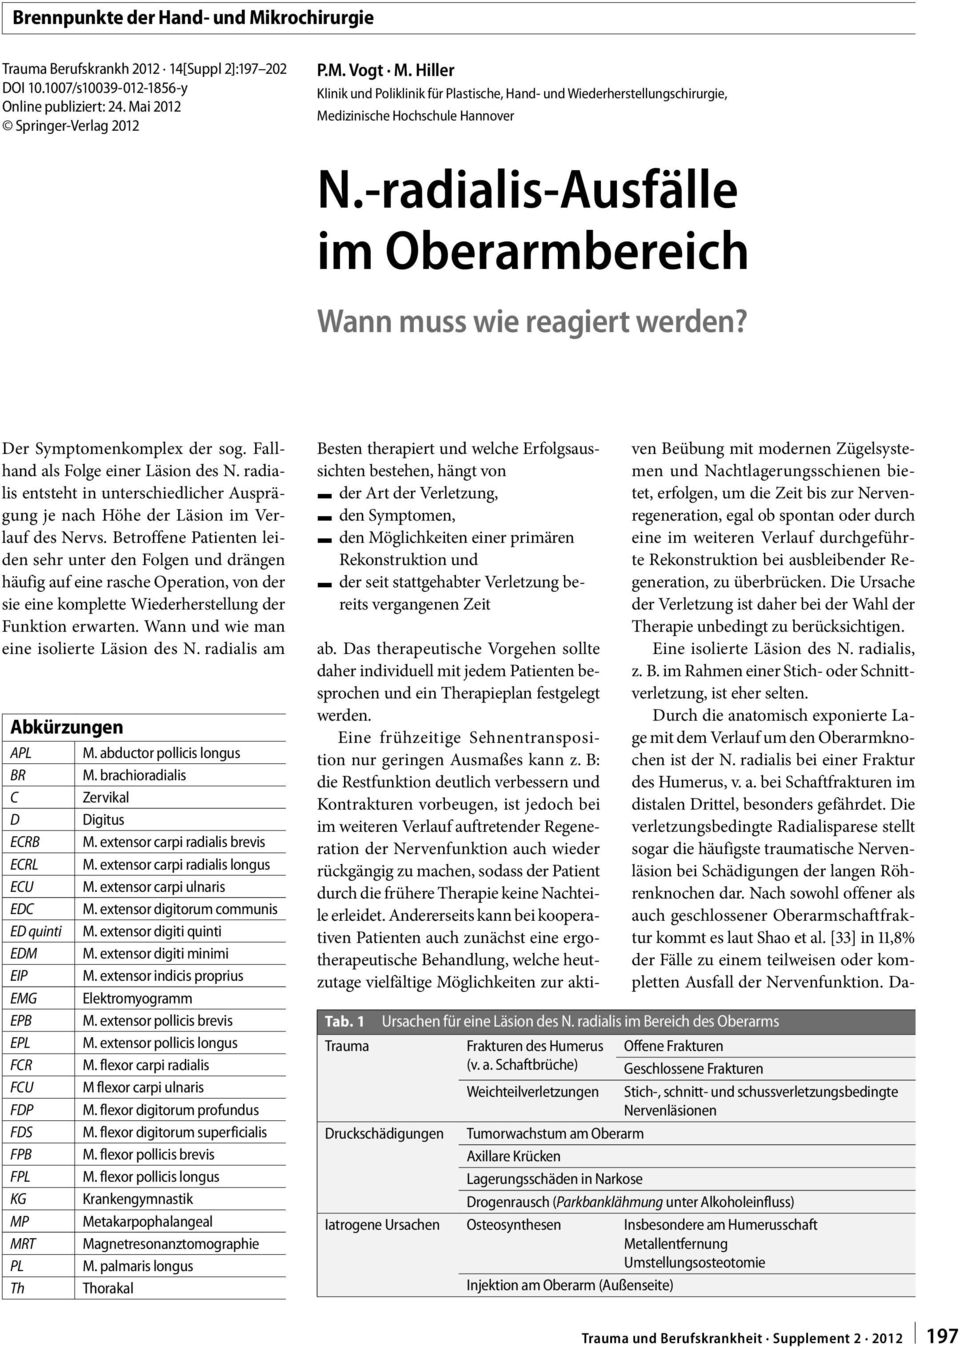 N.-radialis-Ausfälle im Oberarmbereich - PDF